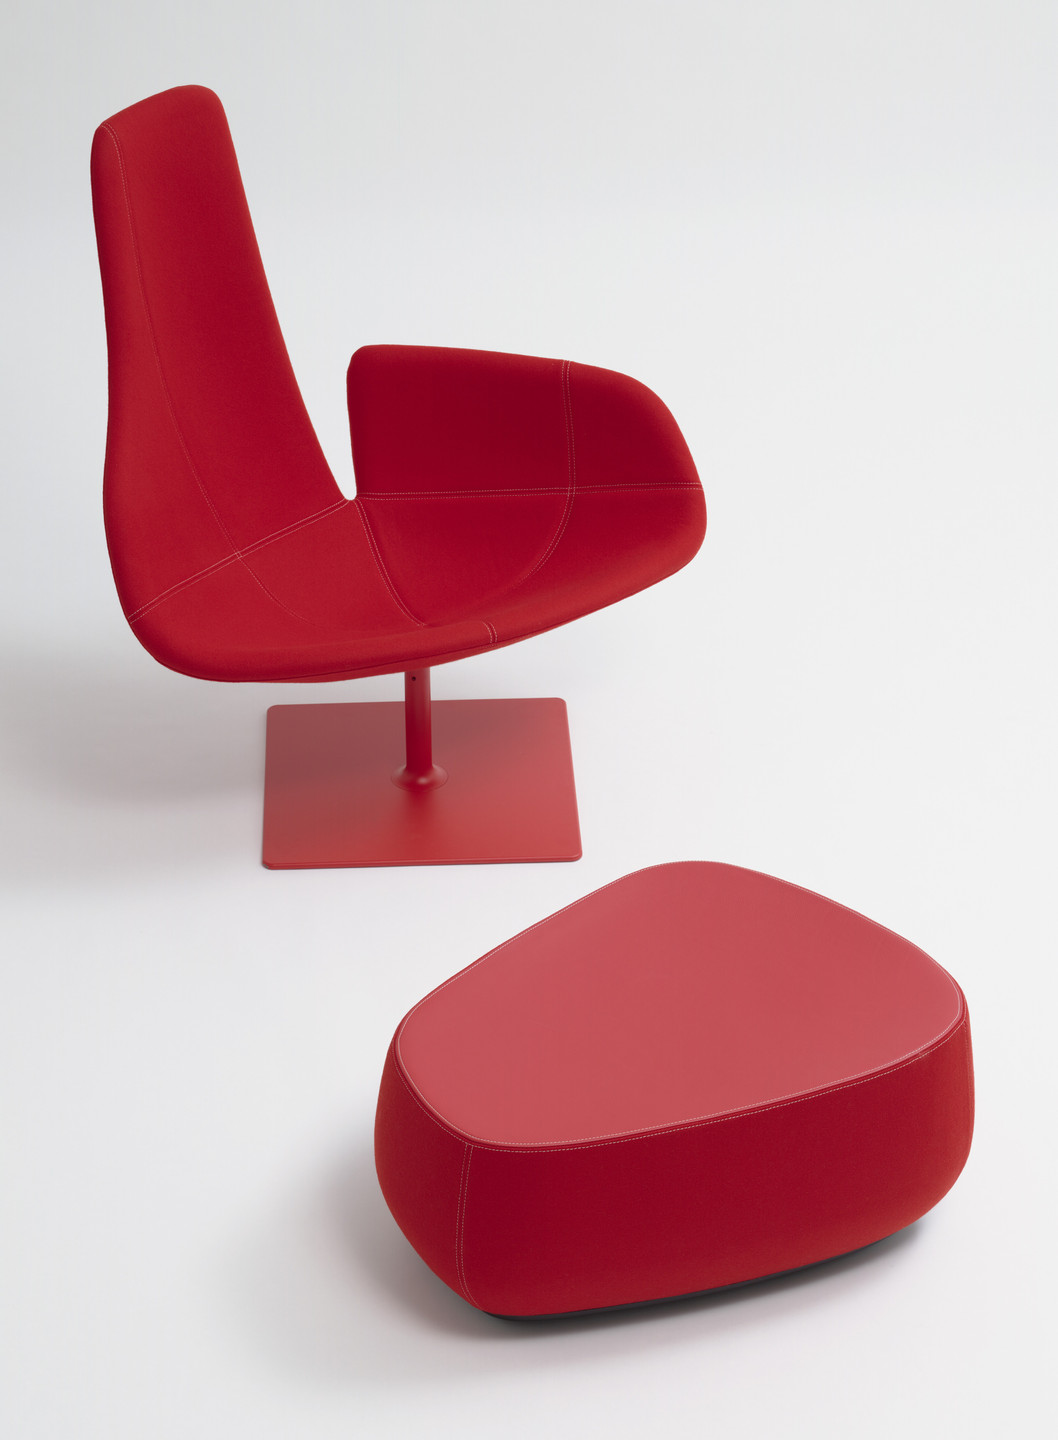 Patricia Urquiola. Fjord Armchair and Foot Stool. 2002